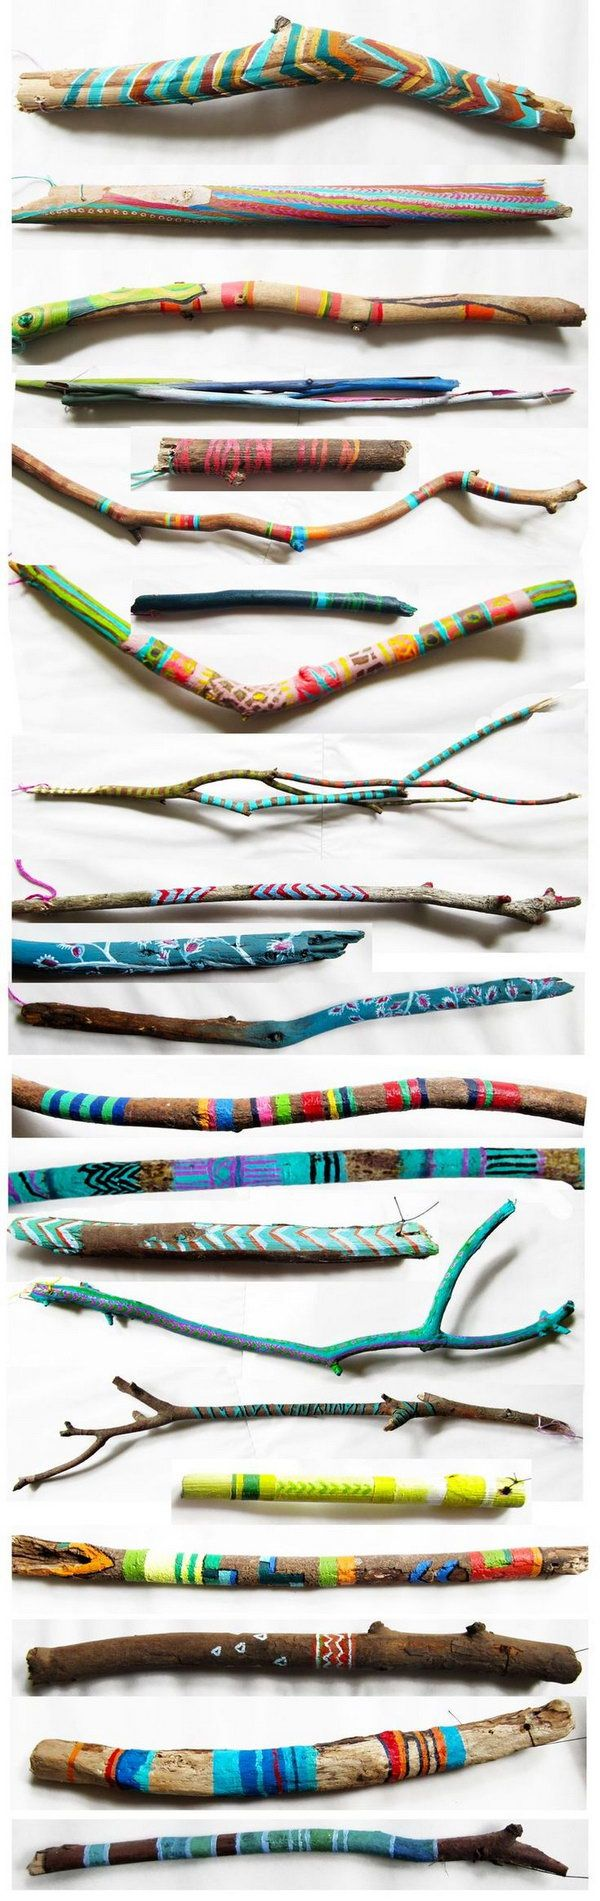 Painted Sticks Craft for Kids. This fun project allows children to explore their creativity.